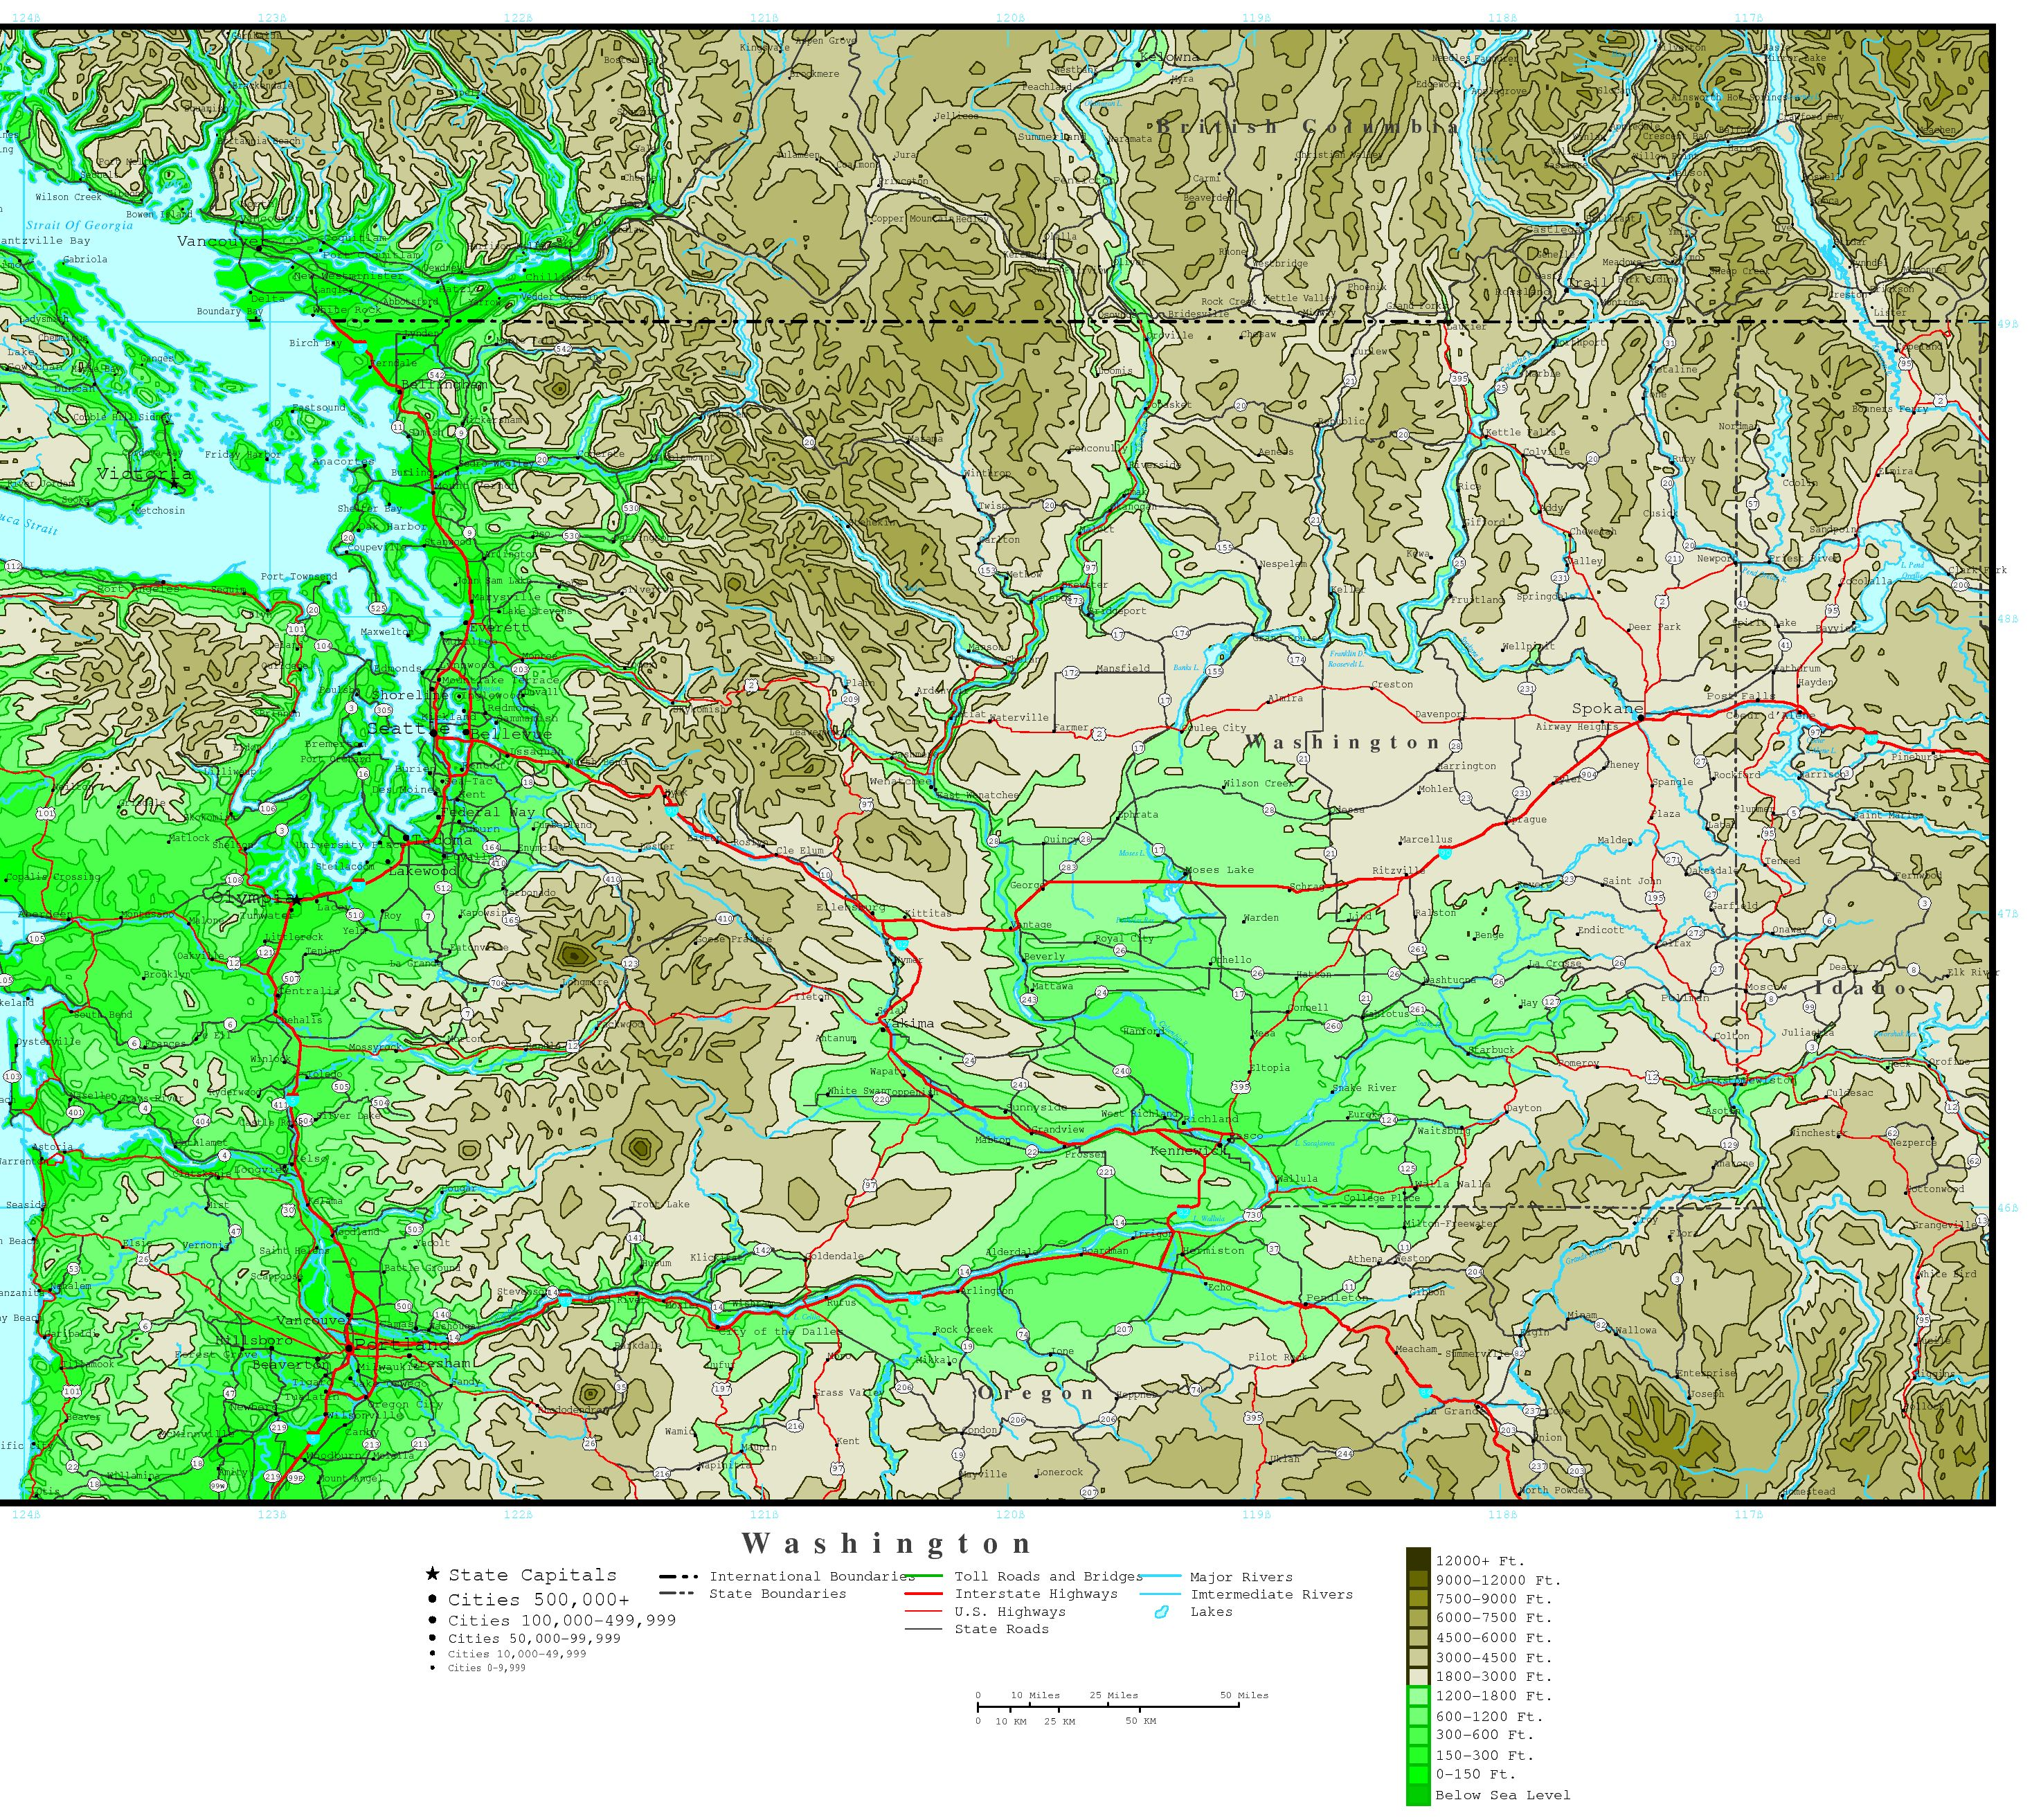 elevation contour map of washington